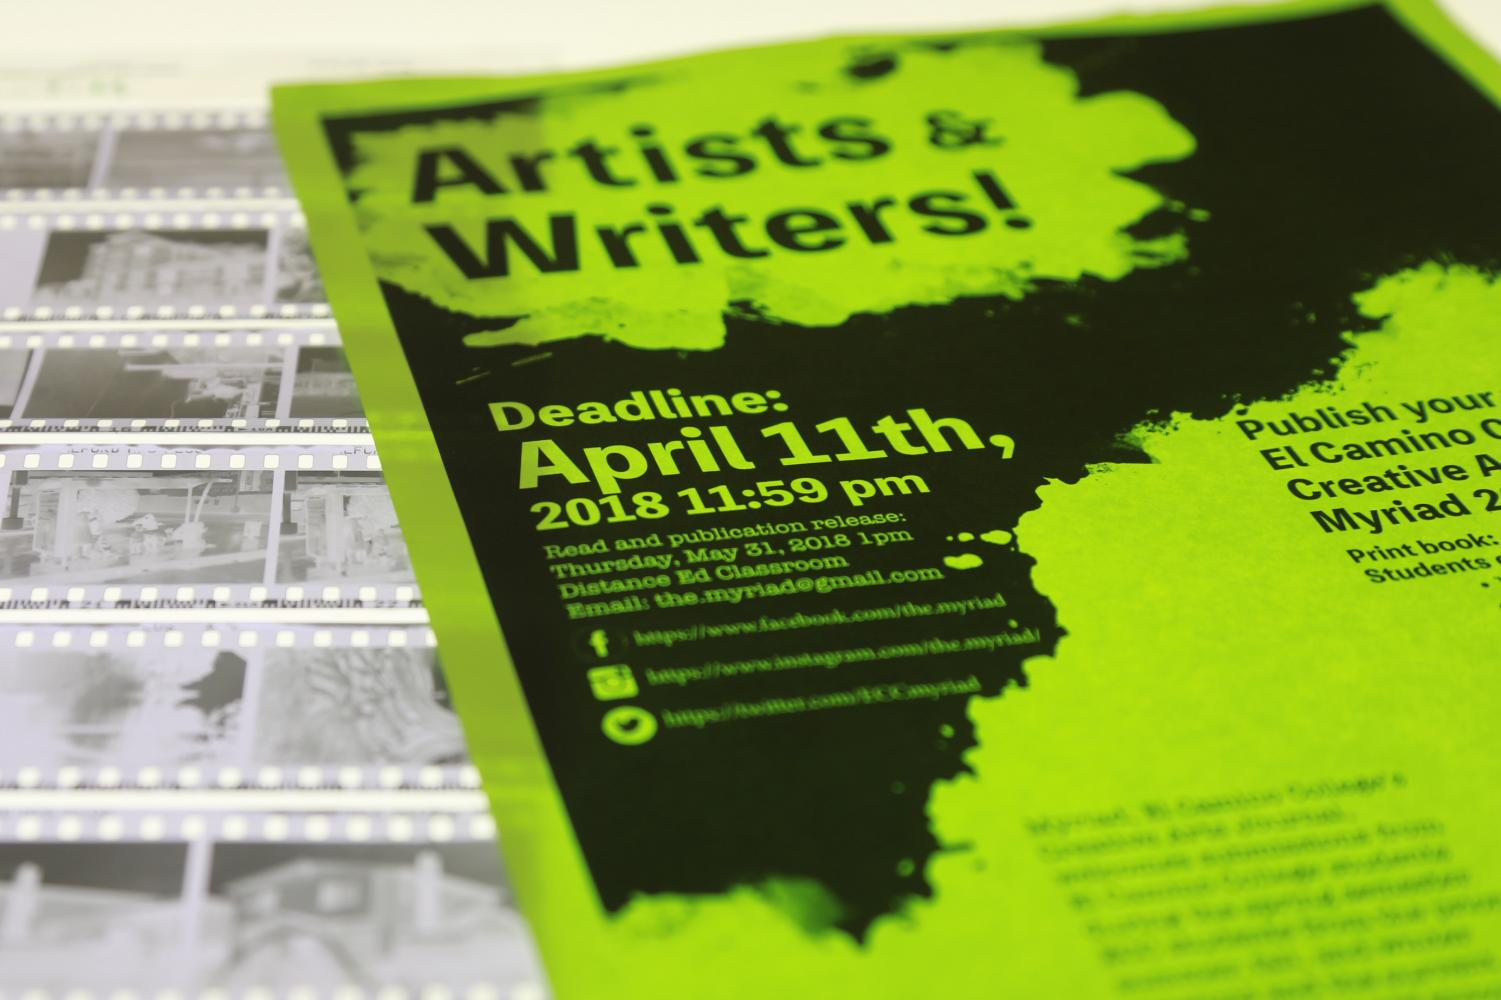 EC creative arts journal accepting spring submissions